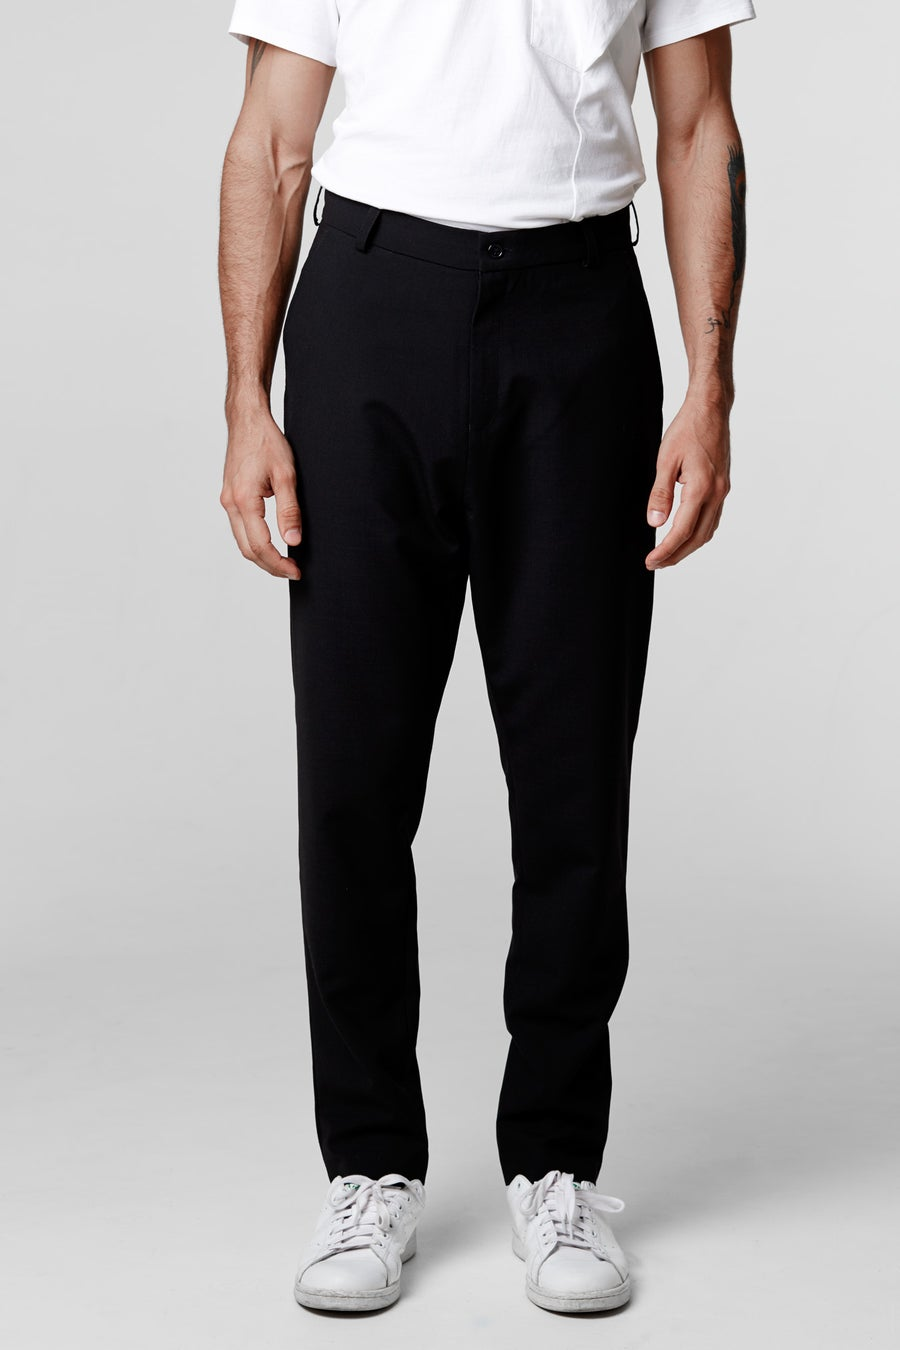 Image of Nico low crotch trousers wool